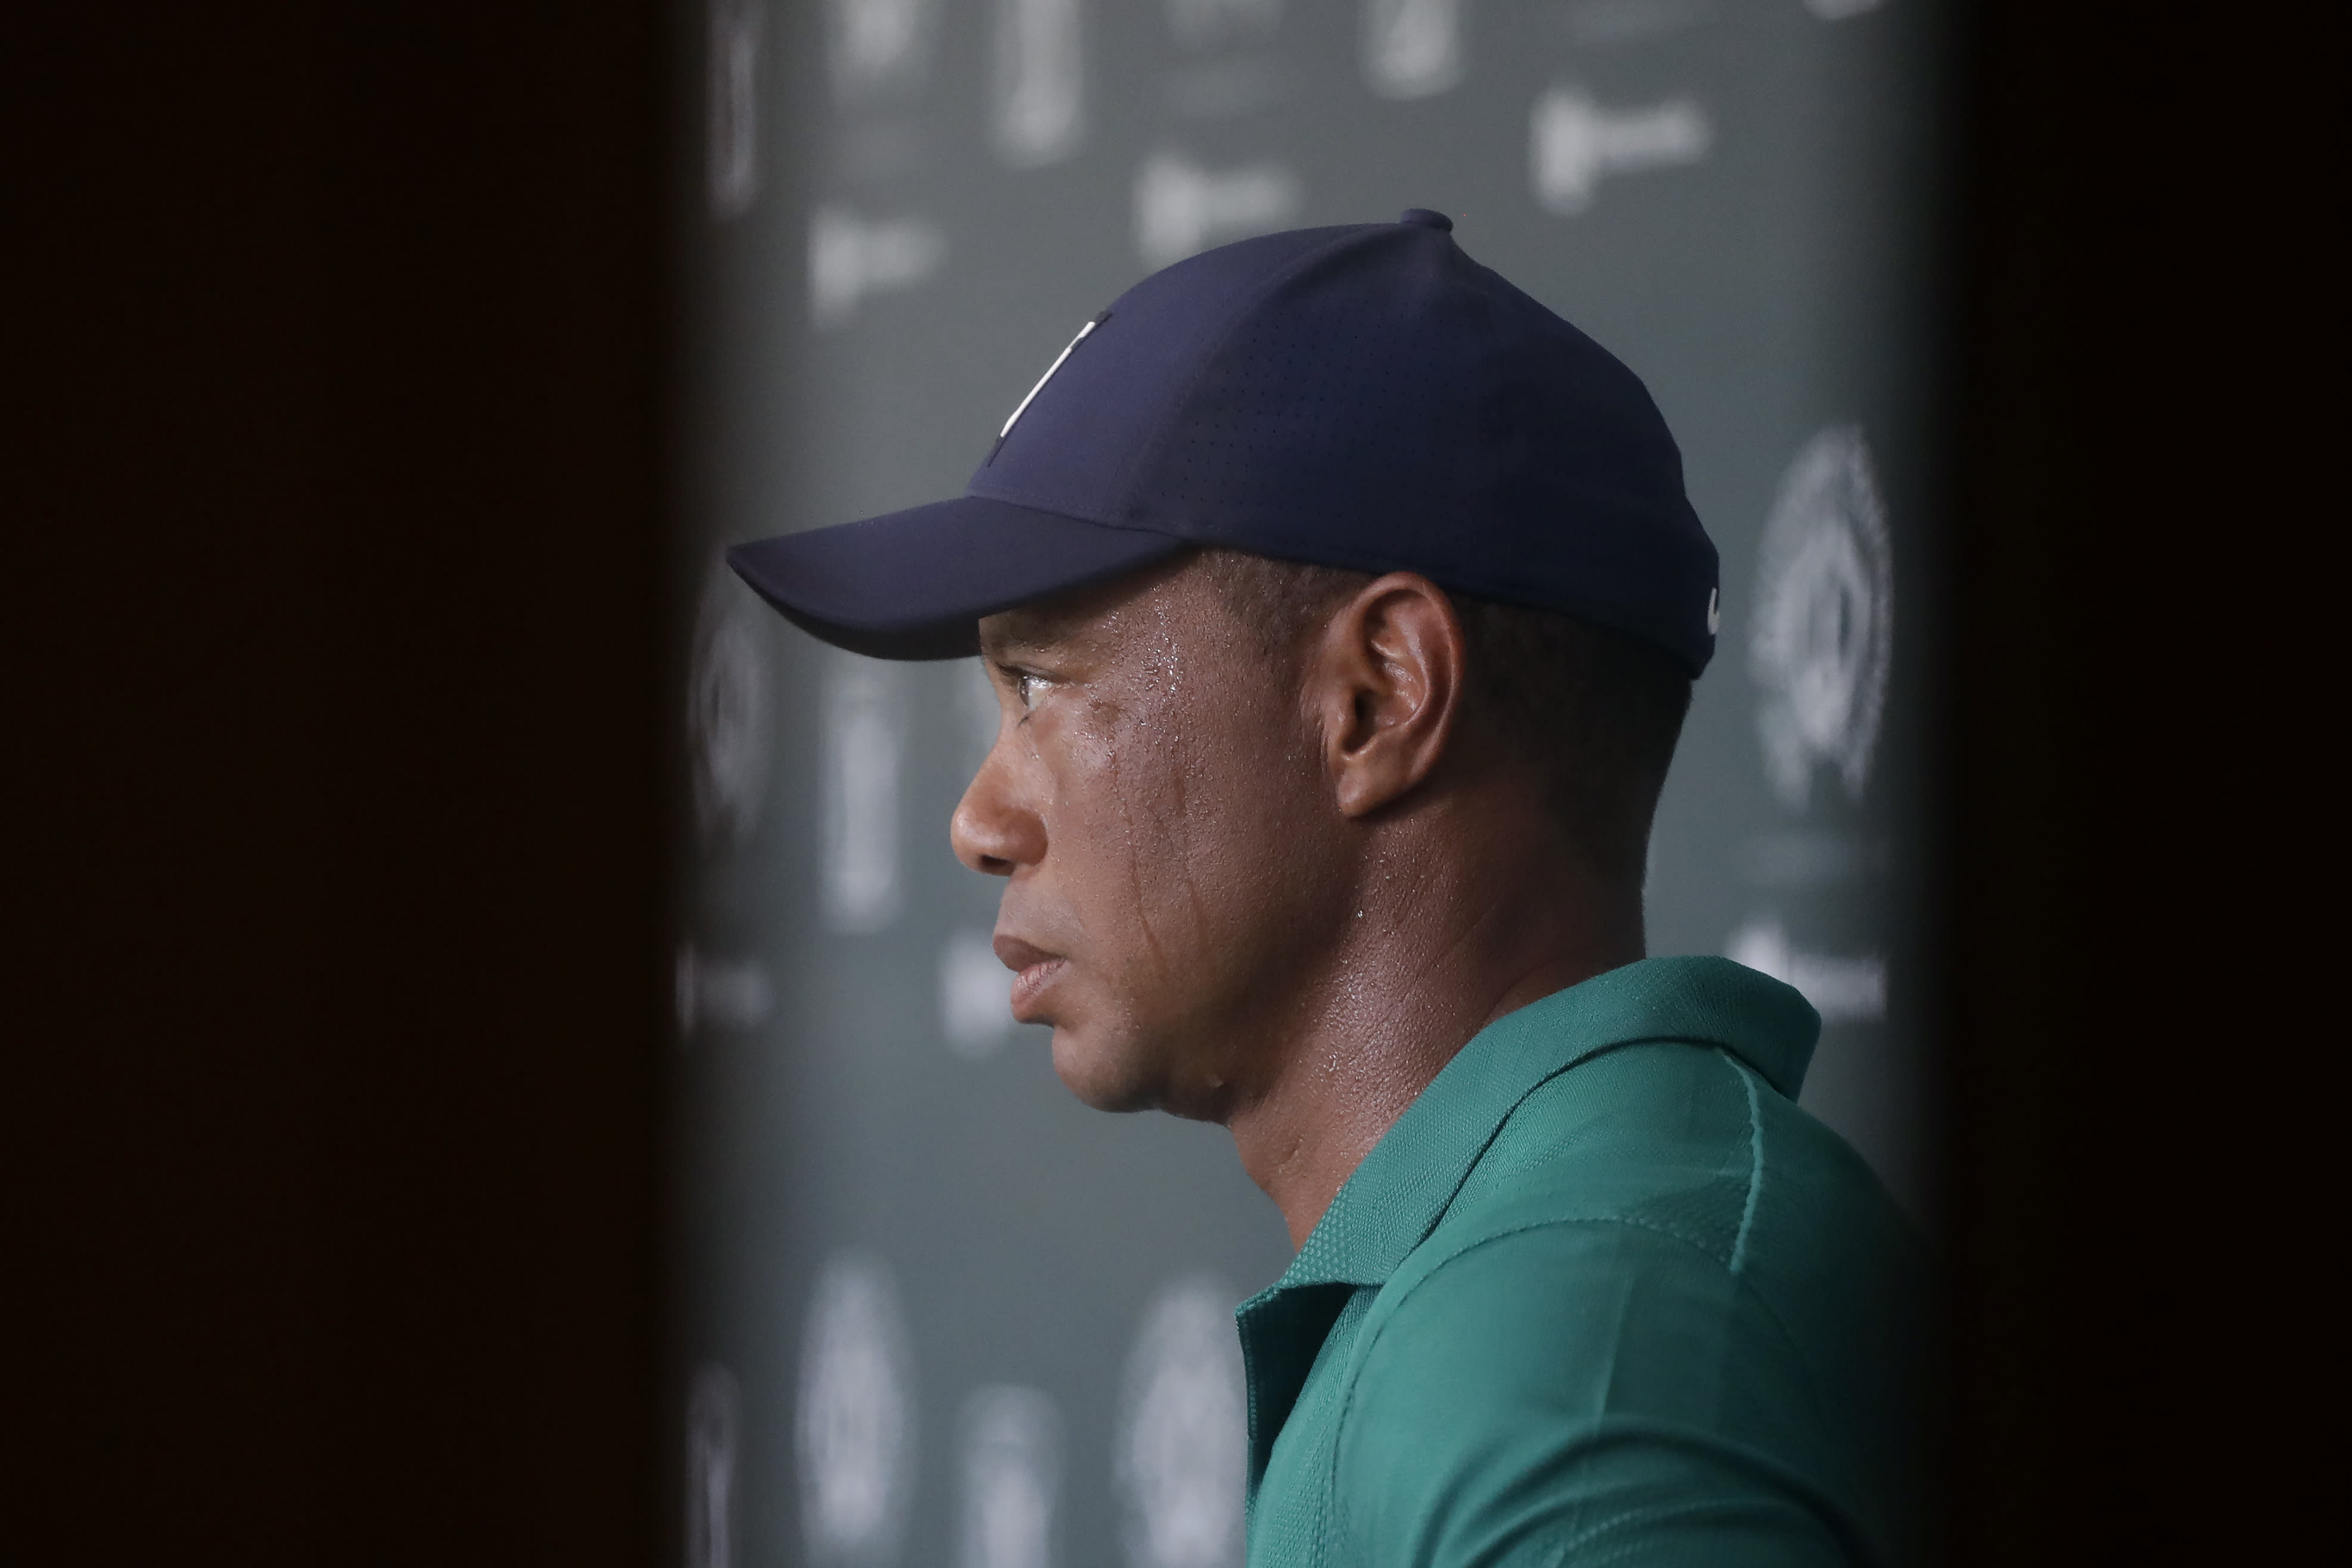 Tiger Woods is interviewed during the third round of the Memorial golf tournament, Saturday, July 18, 2020, in Dublin, Ohio. (AP Photo/Darron Cummings)